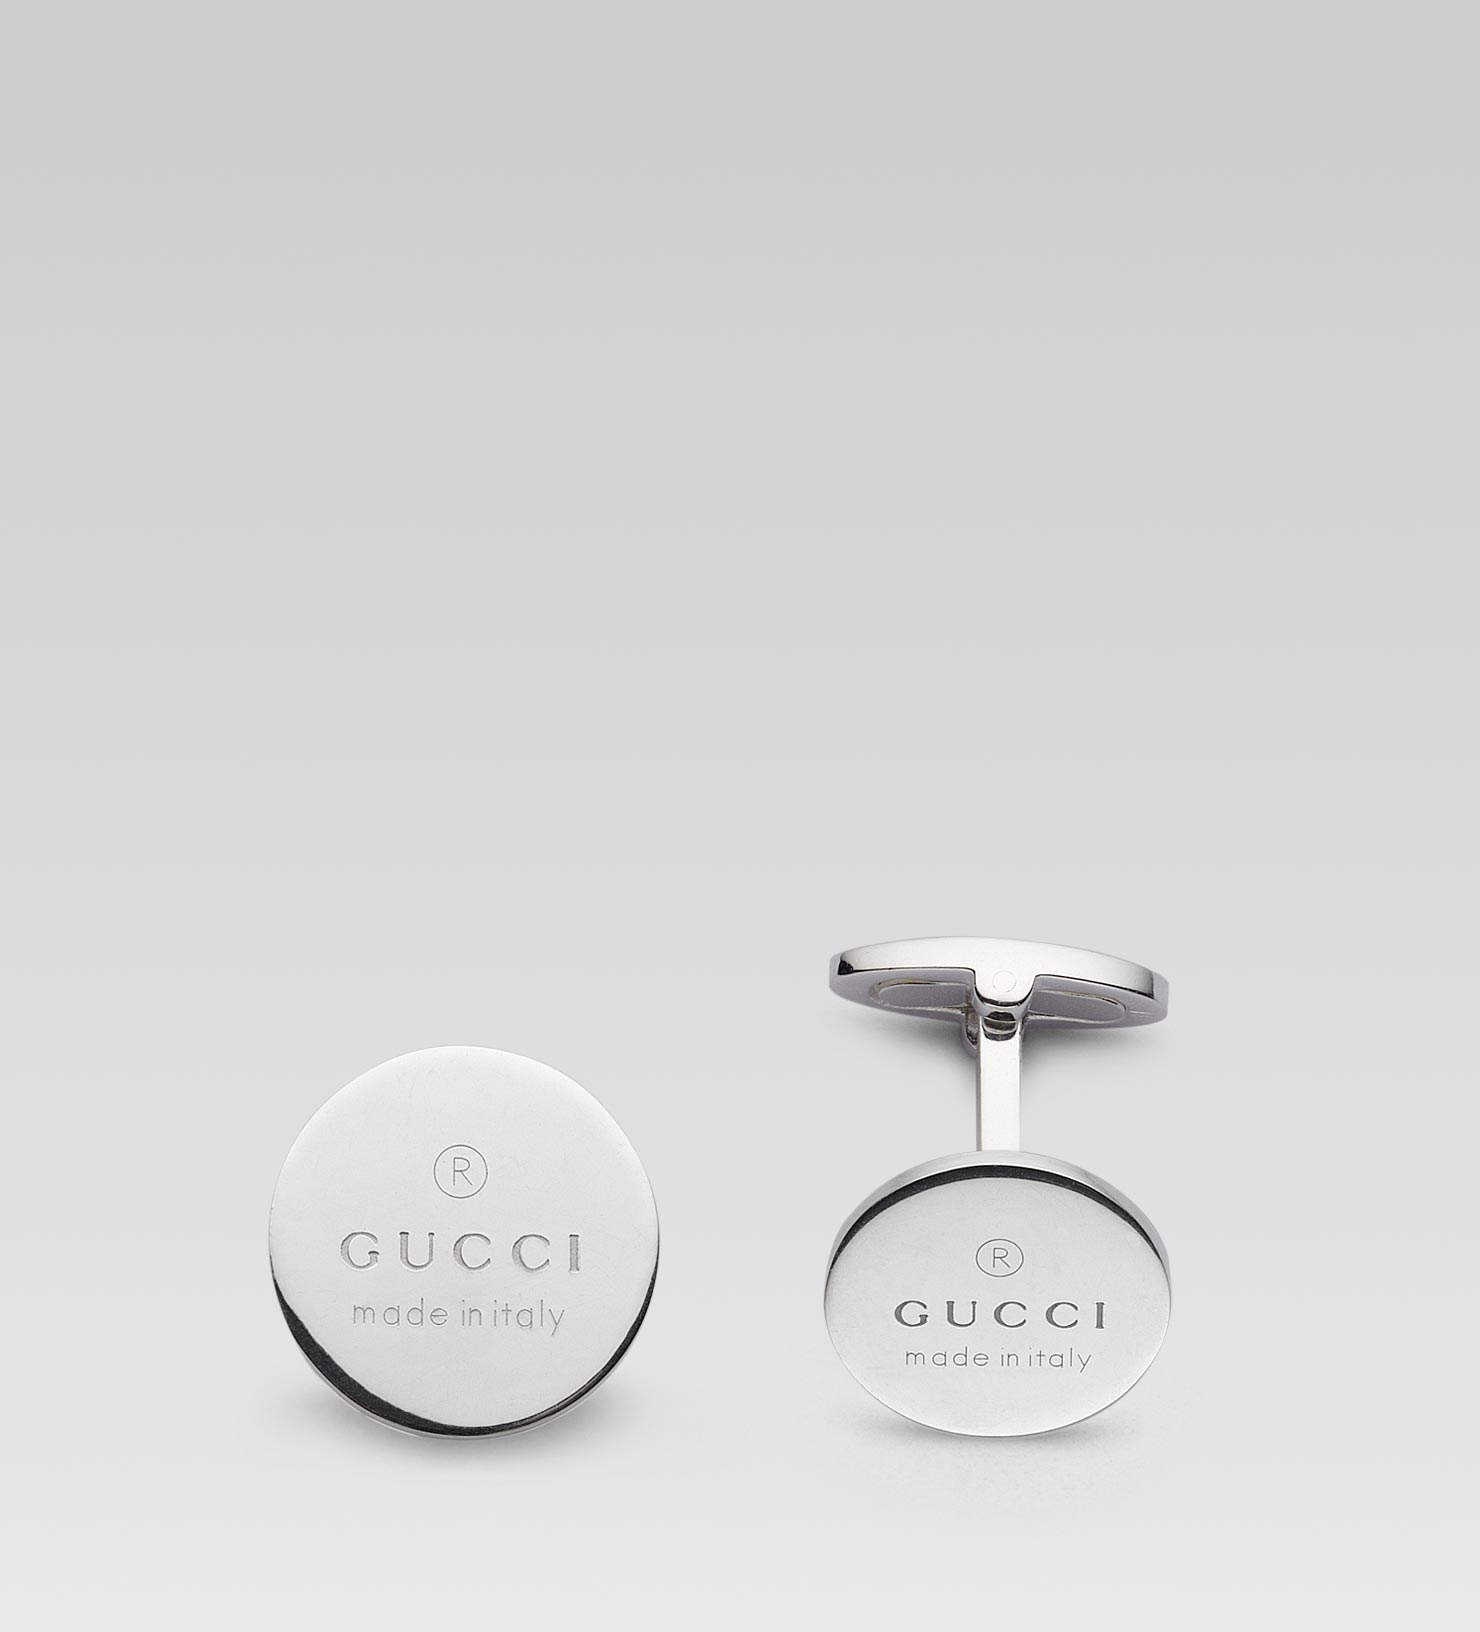 Cufflinks with Gucci trademark